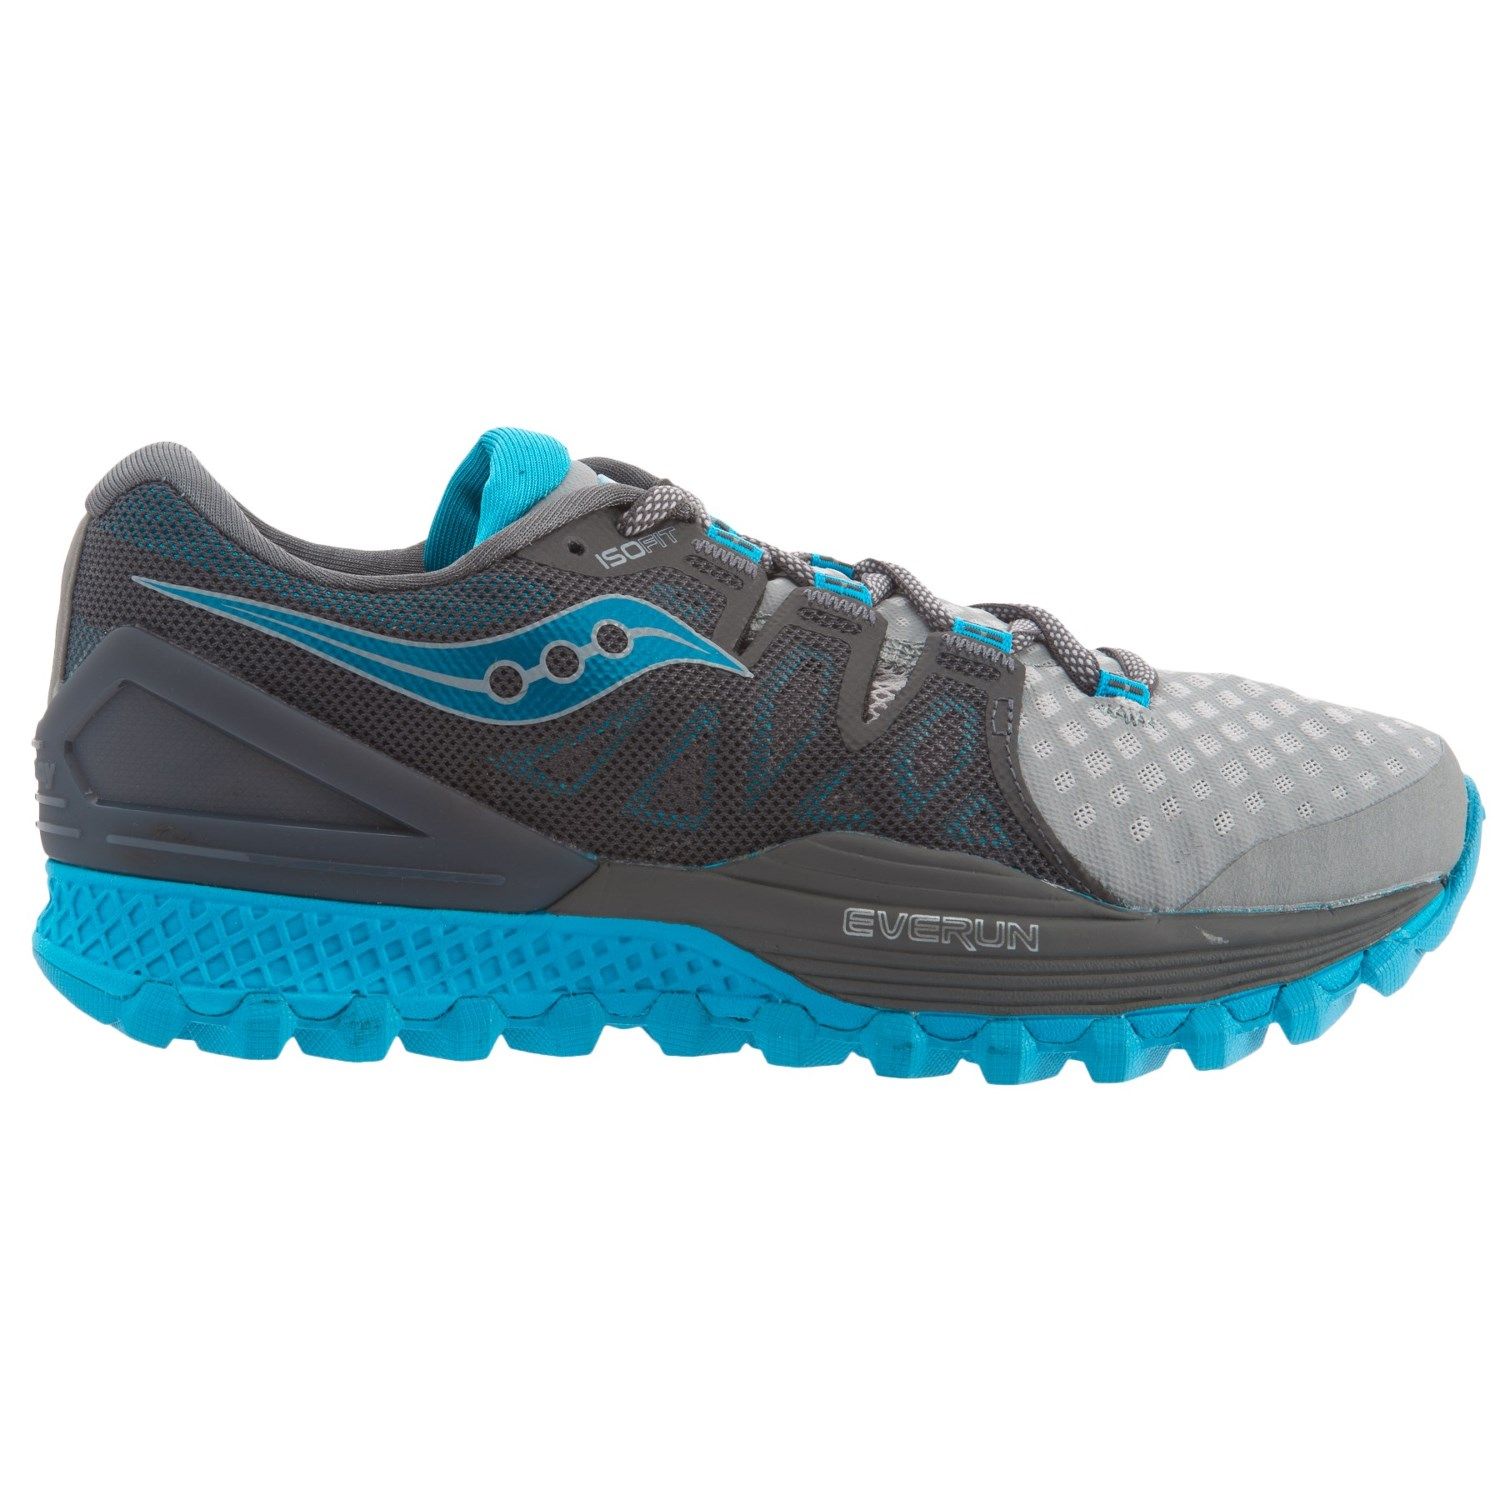 Saucony Wode los hombres Xodus ISO 2 Fabric Low Top Lace Up Running Sneaker